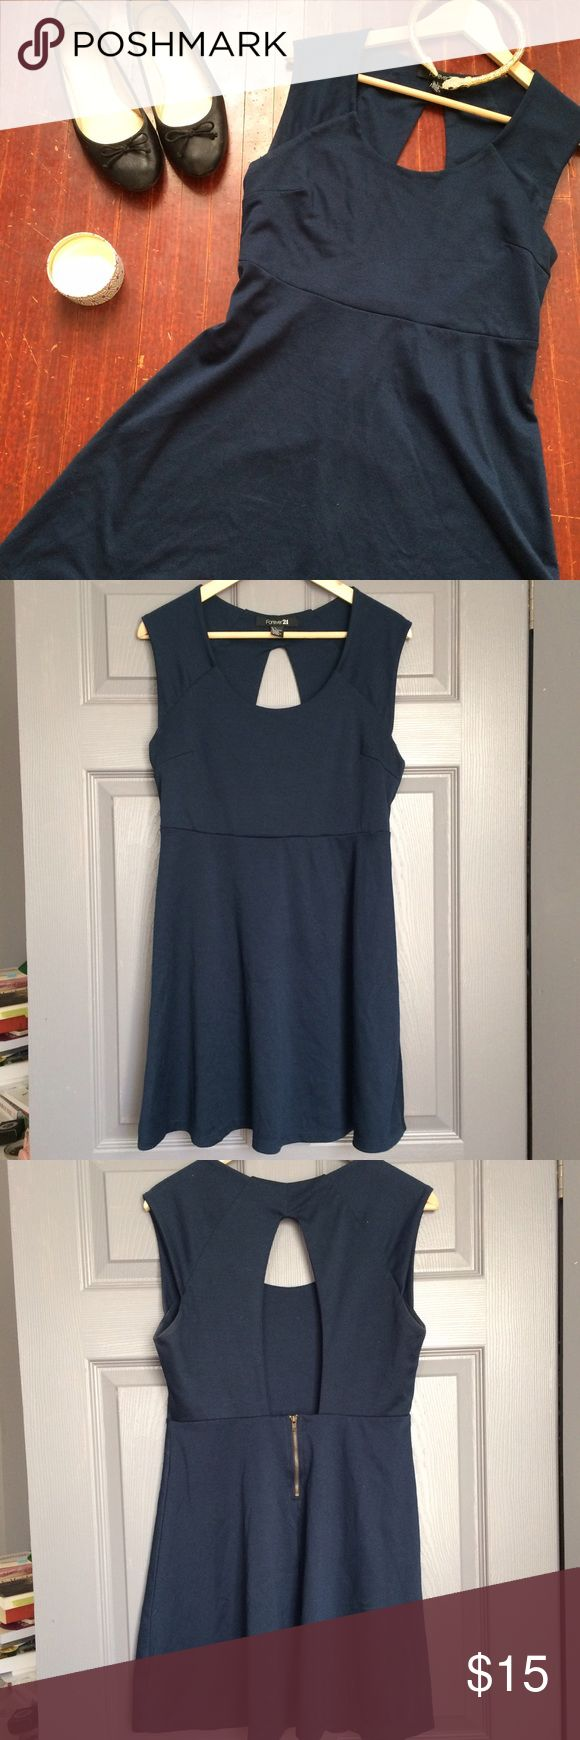 Forever21 Open Back Navy Skater Dress Cute & comfortable Forever21 knit skater dress. Open keyhole back, scoop neck, short zip at waist. Good condition with some pilling and mild discoloration under arms, pictured. Good quality knit that skims curves and is super flattering. Forever 21 Dresses Backless